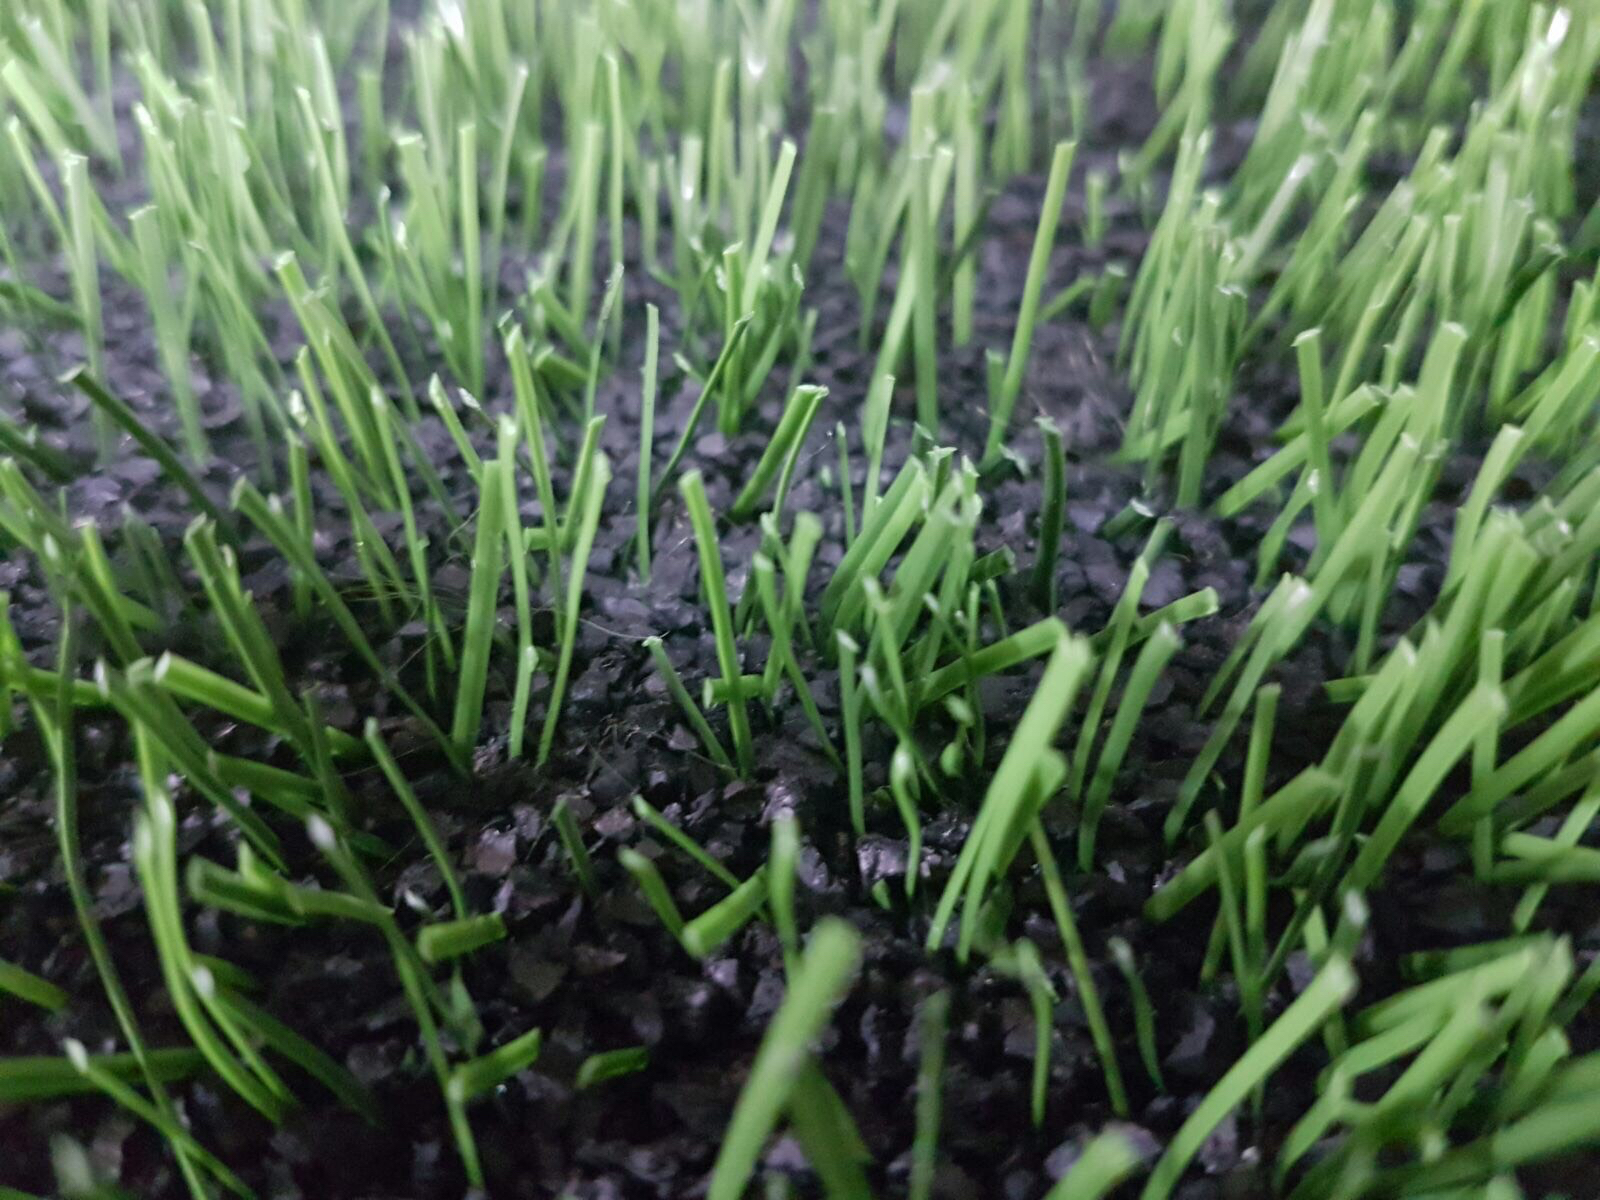 SBR rubber granulate has been the subject of vociferous speculation regarding its potential toxicity to soccer players using artificial pitches containing this infill